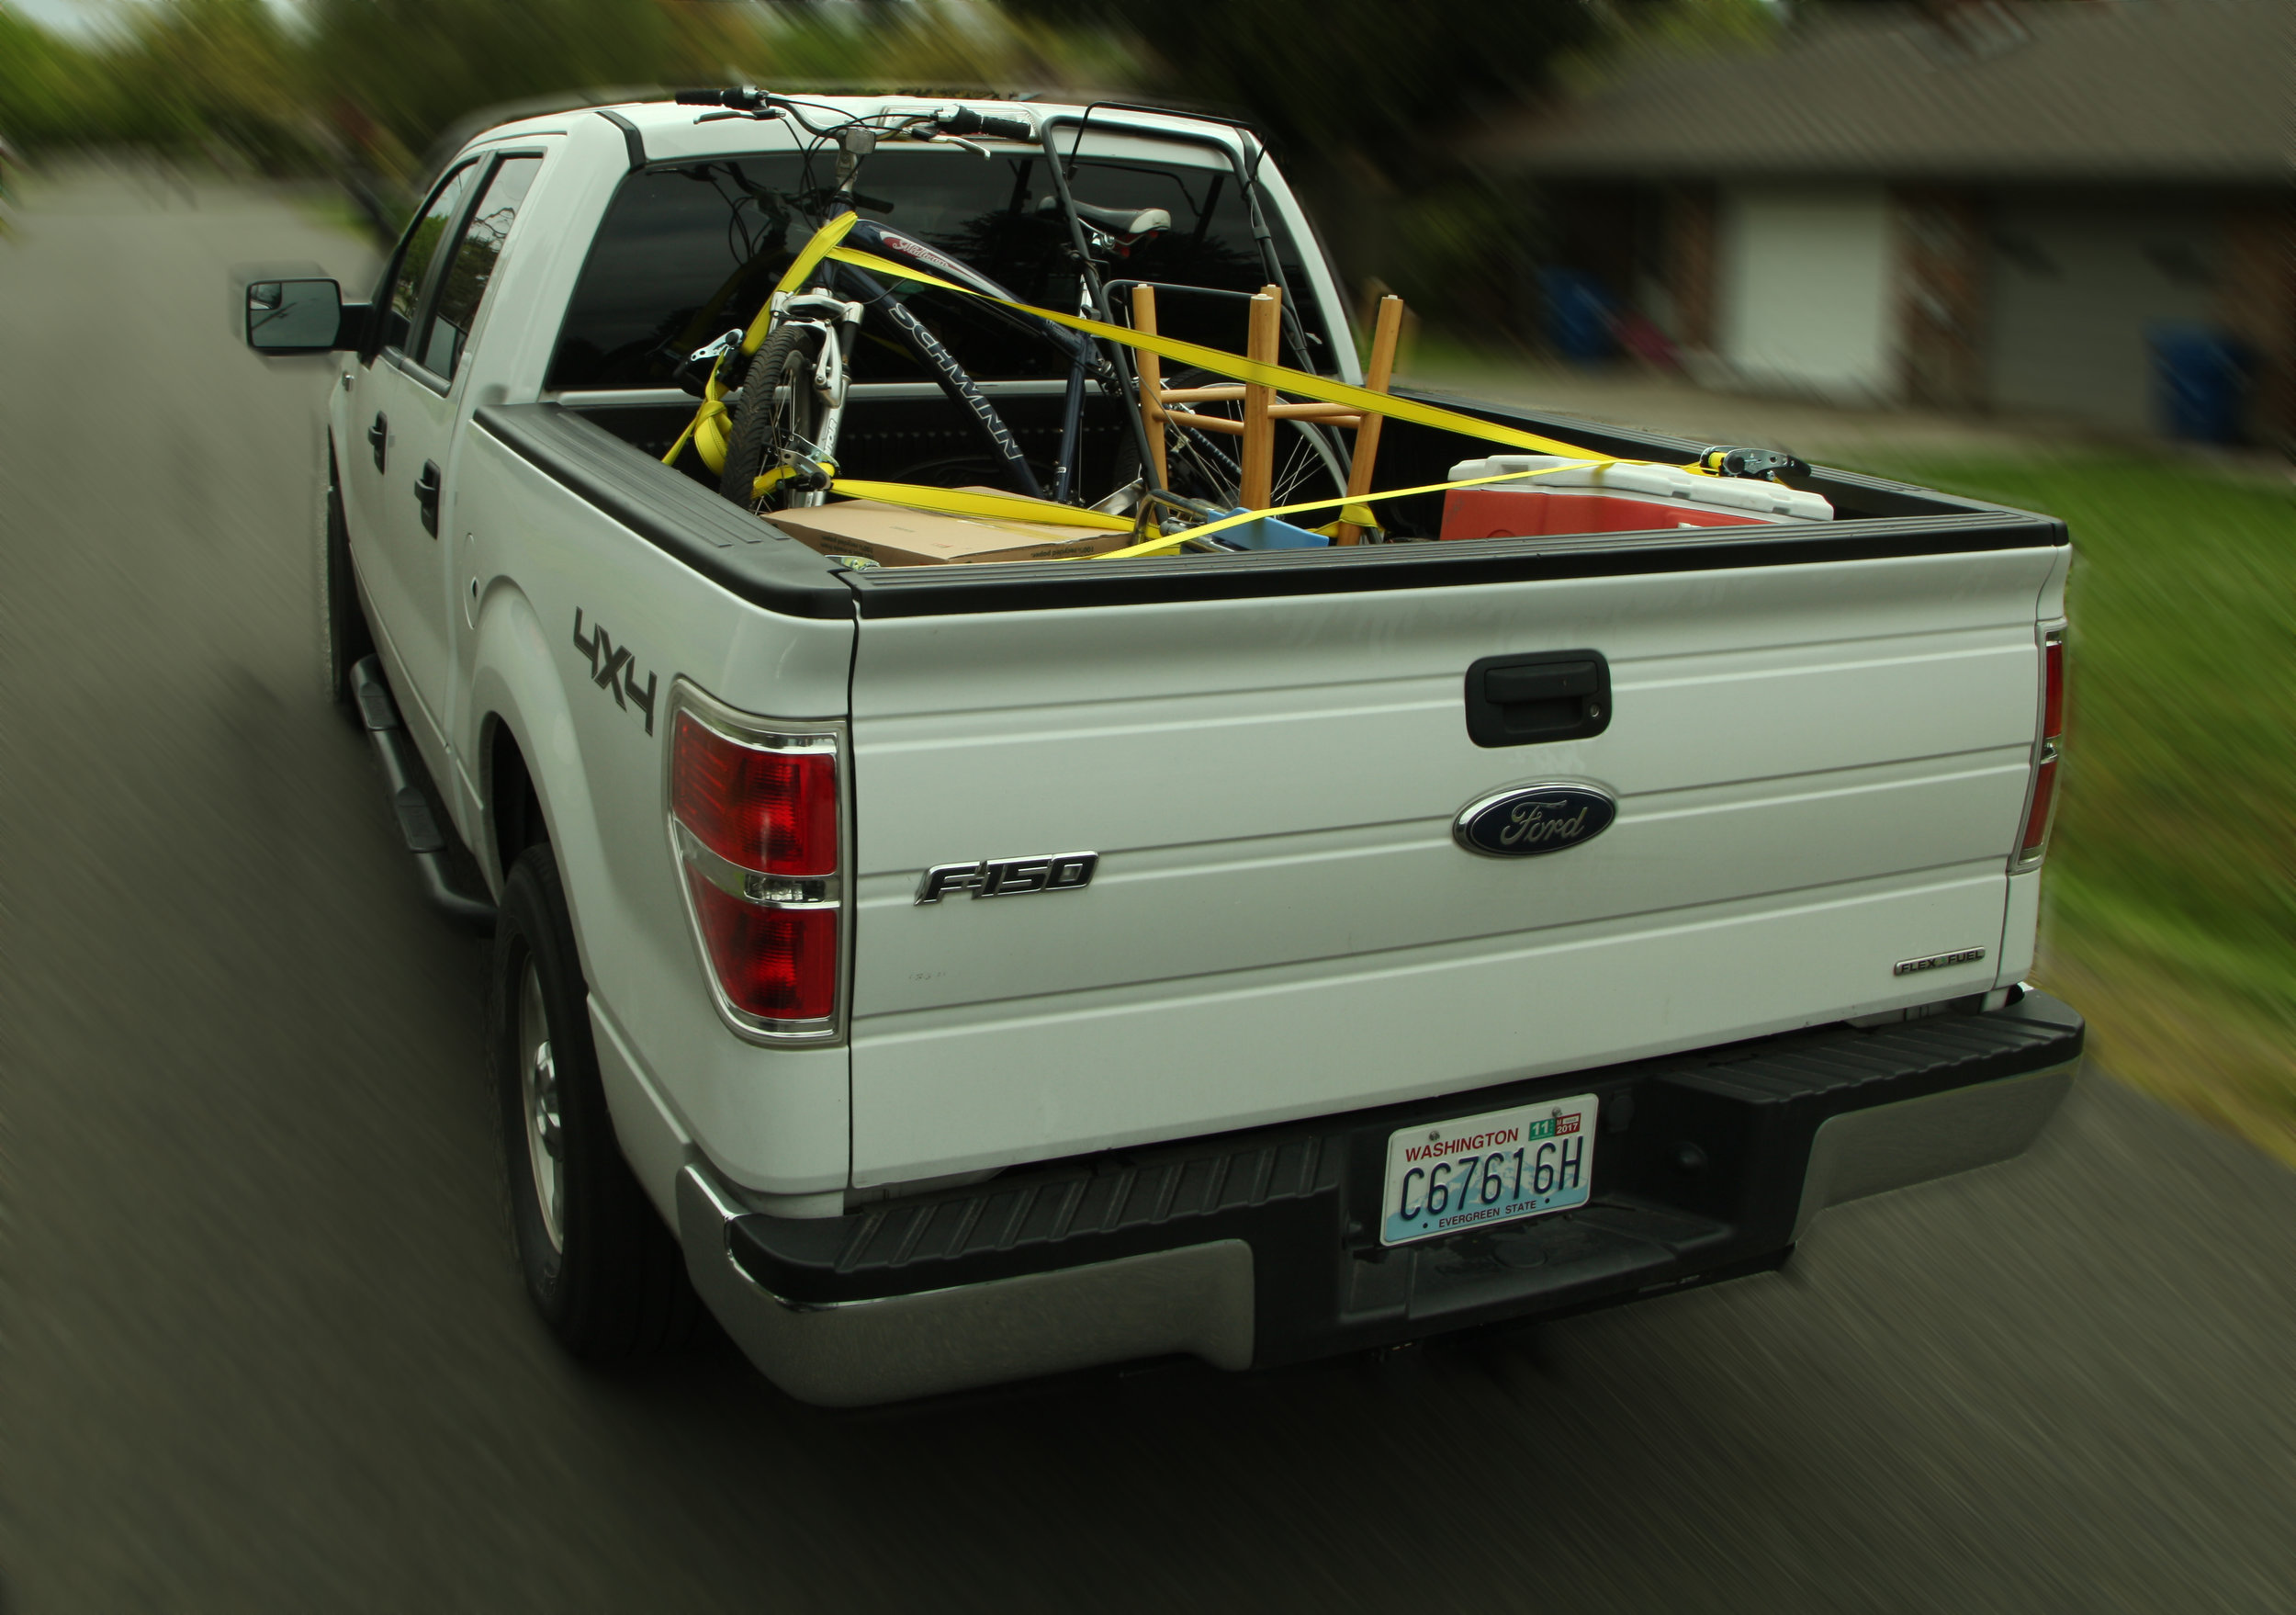 Wrap straps through and around items such as hand trucks and ladders. Secure the straps to anchor points in the bed of the truck or trailer.